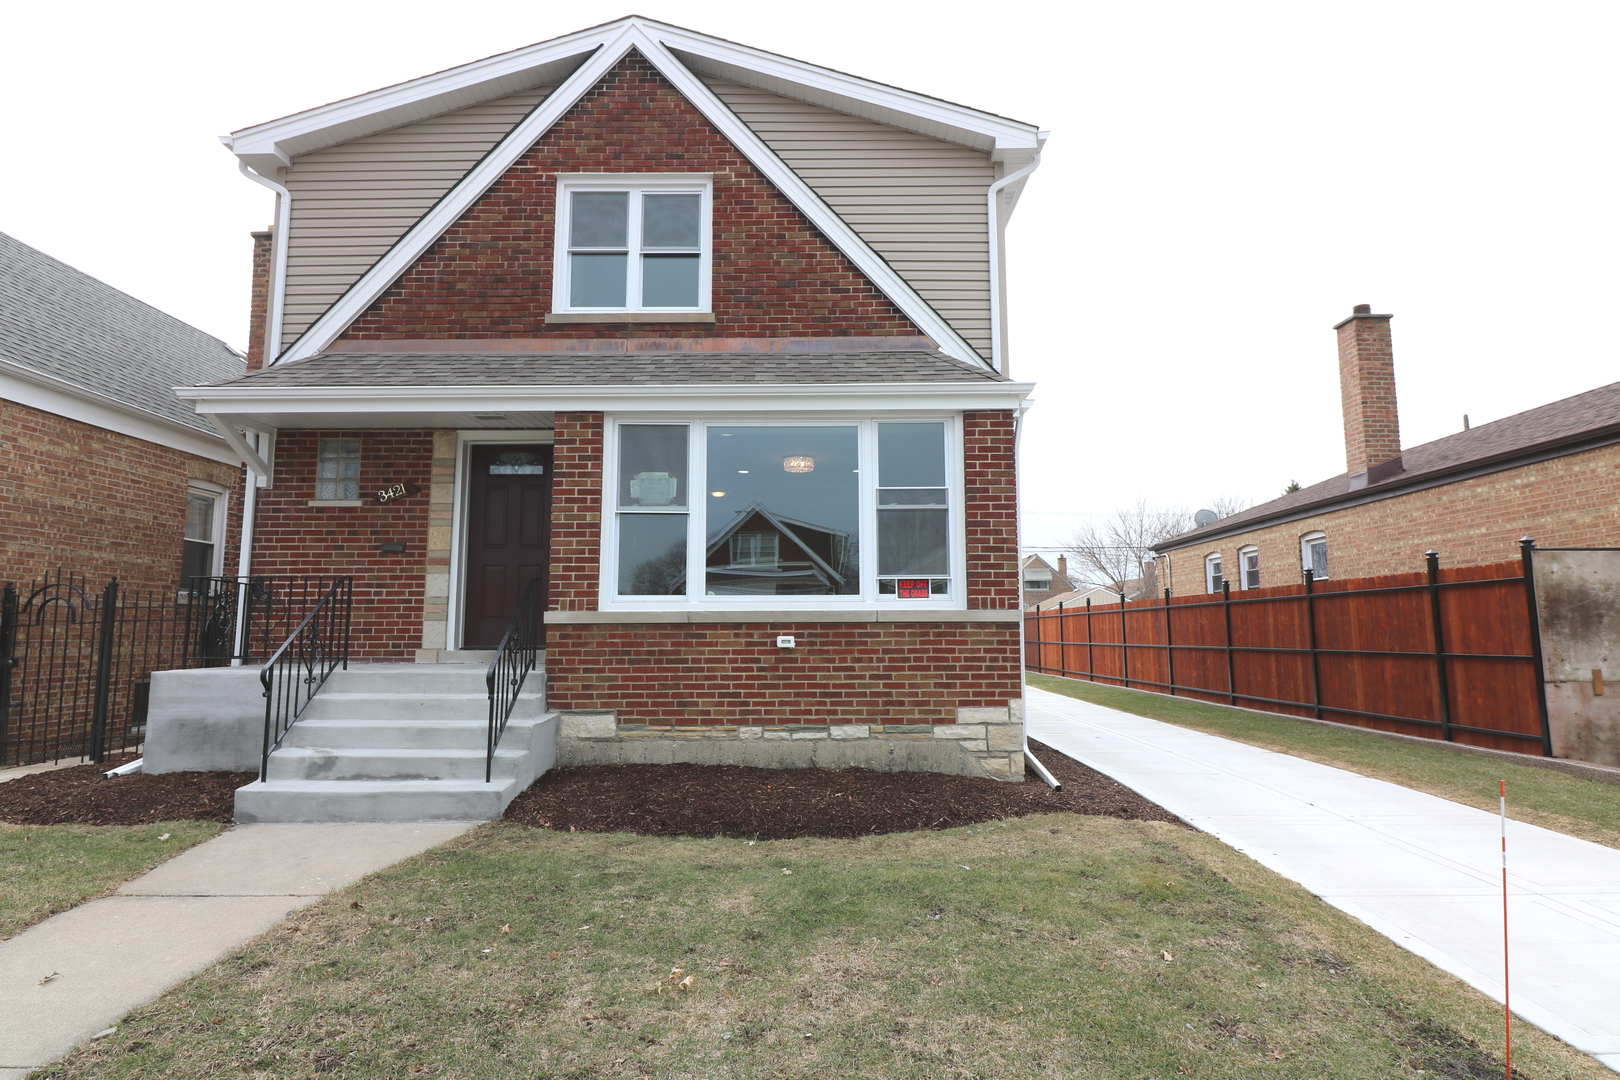 3421 WEST 73RD STREET, CHICAGO, IL 60629